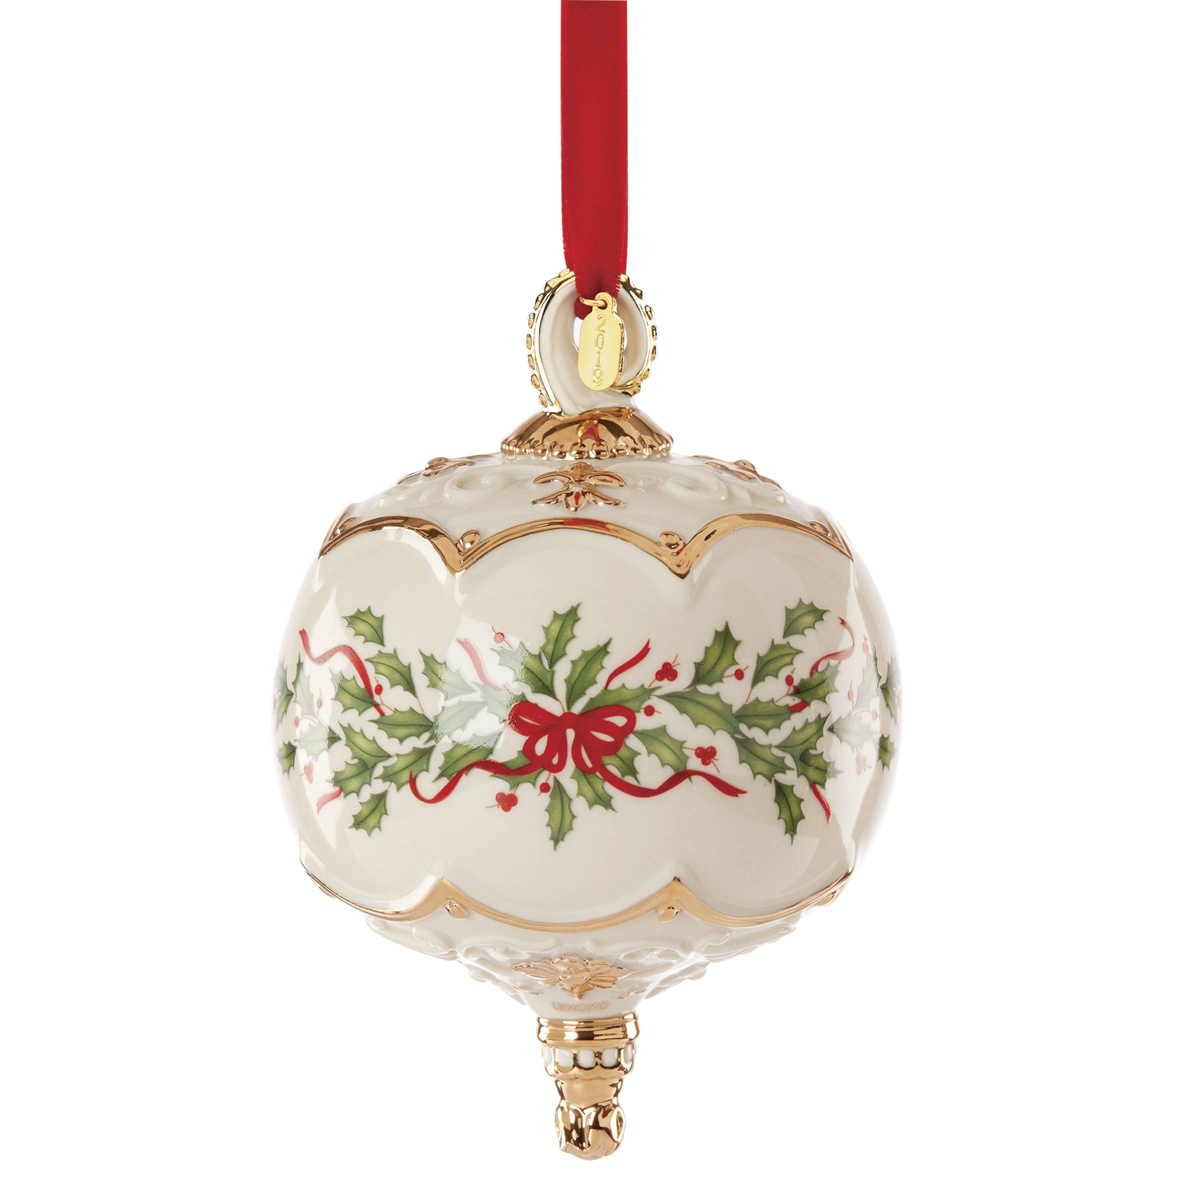 Lenox 2019 Annual Holiday Ornament